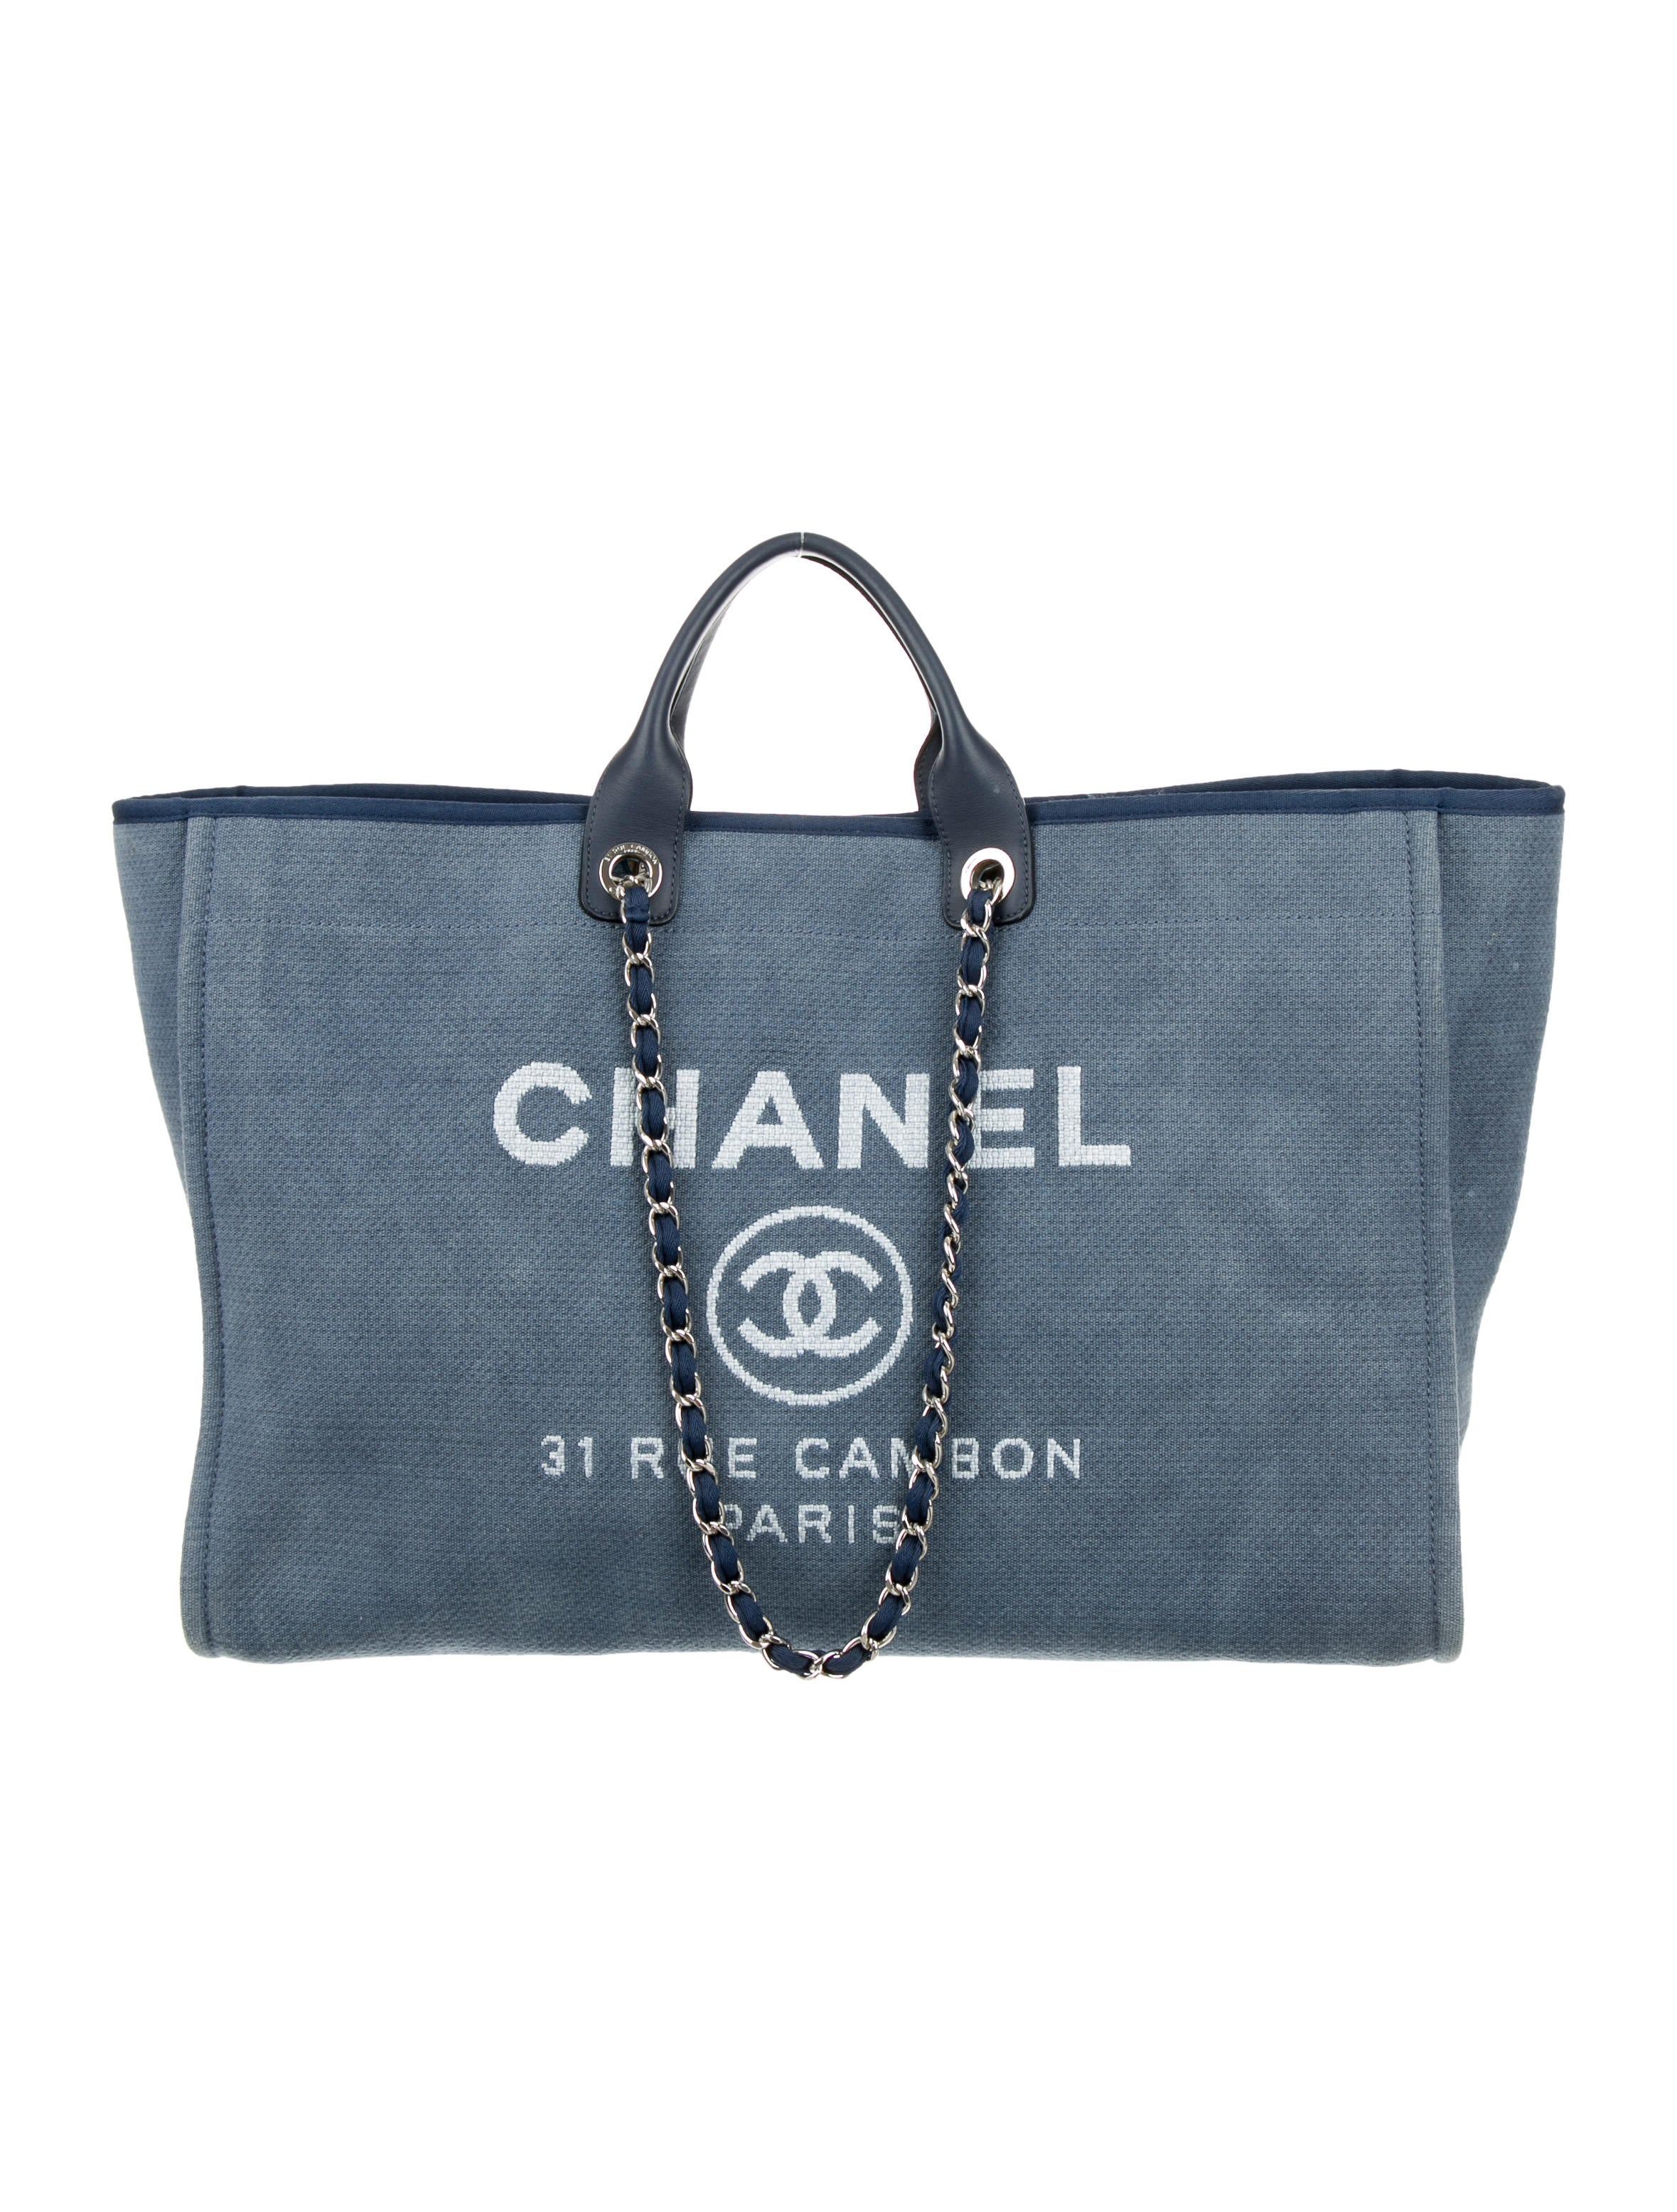 1802f83e6ef5 Chanel Deauville Tote Extra Large Bag - Handbags - CHA162730